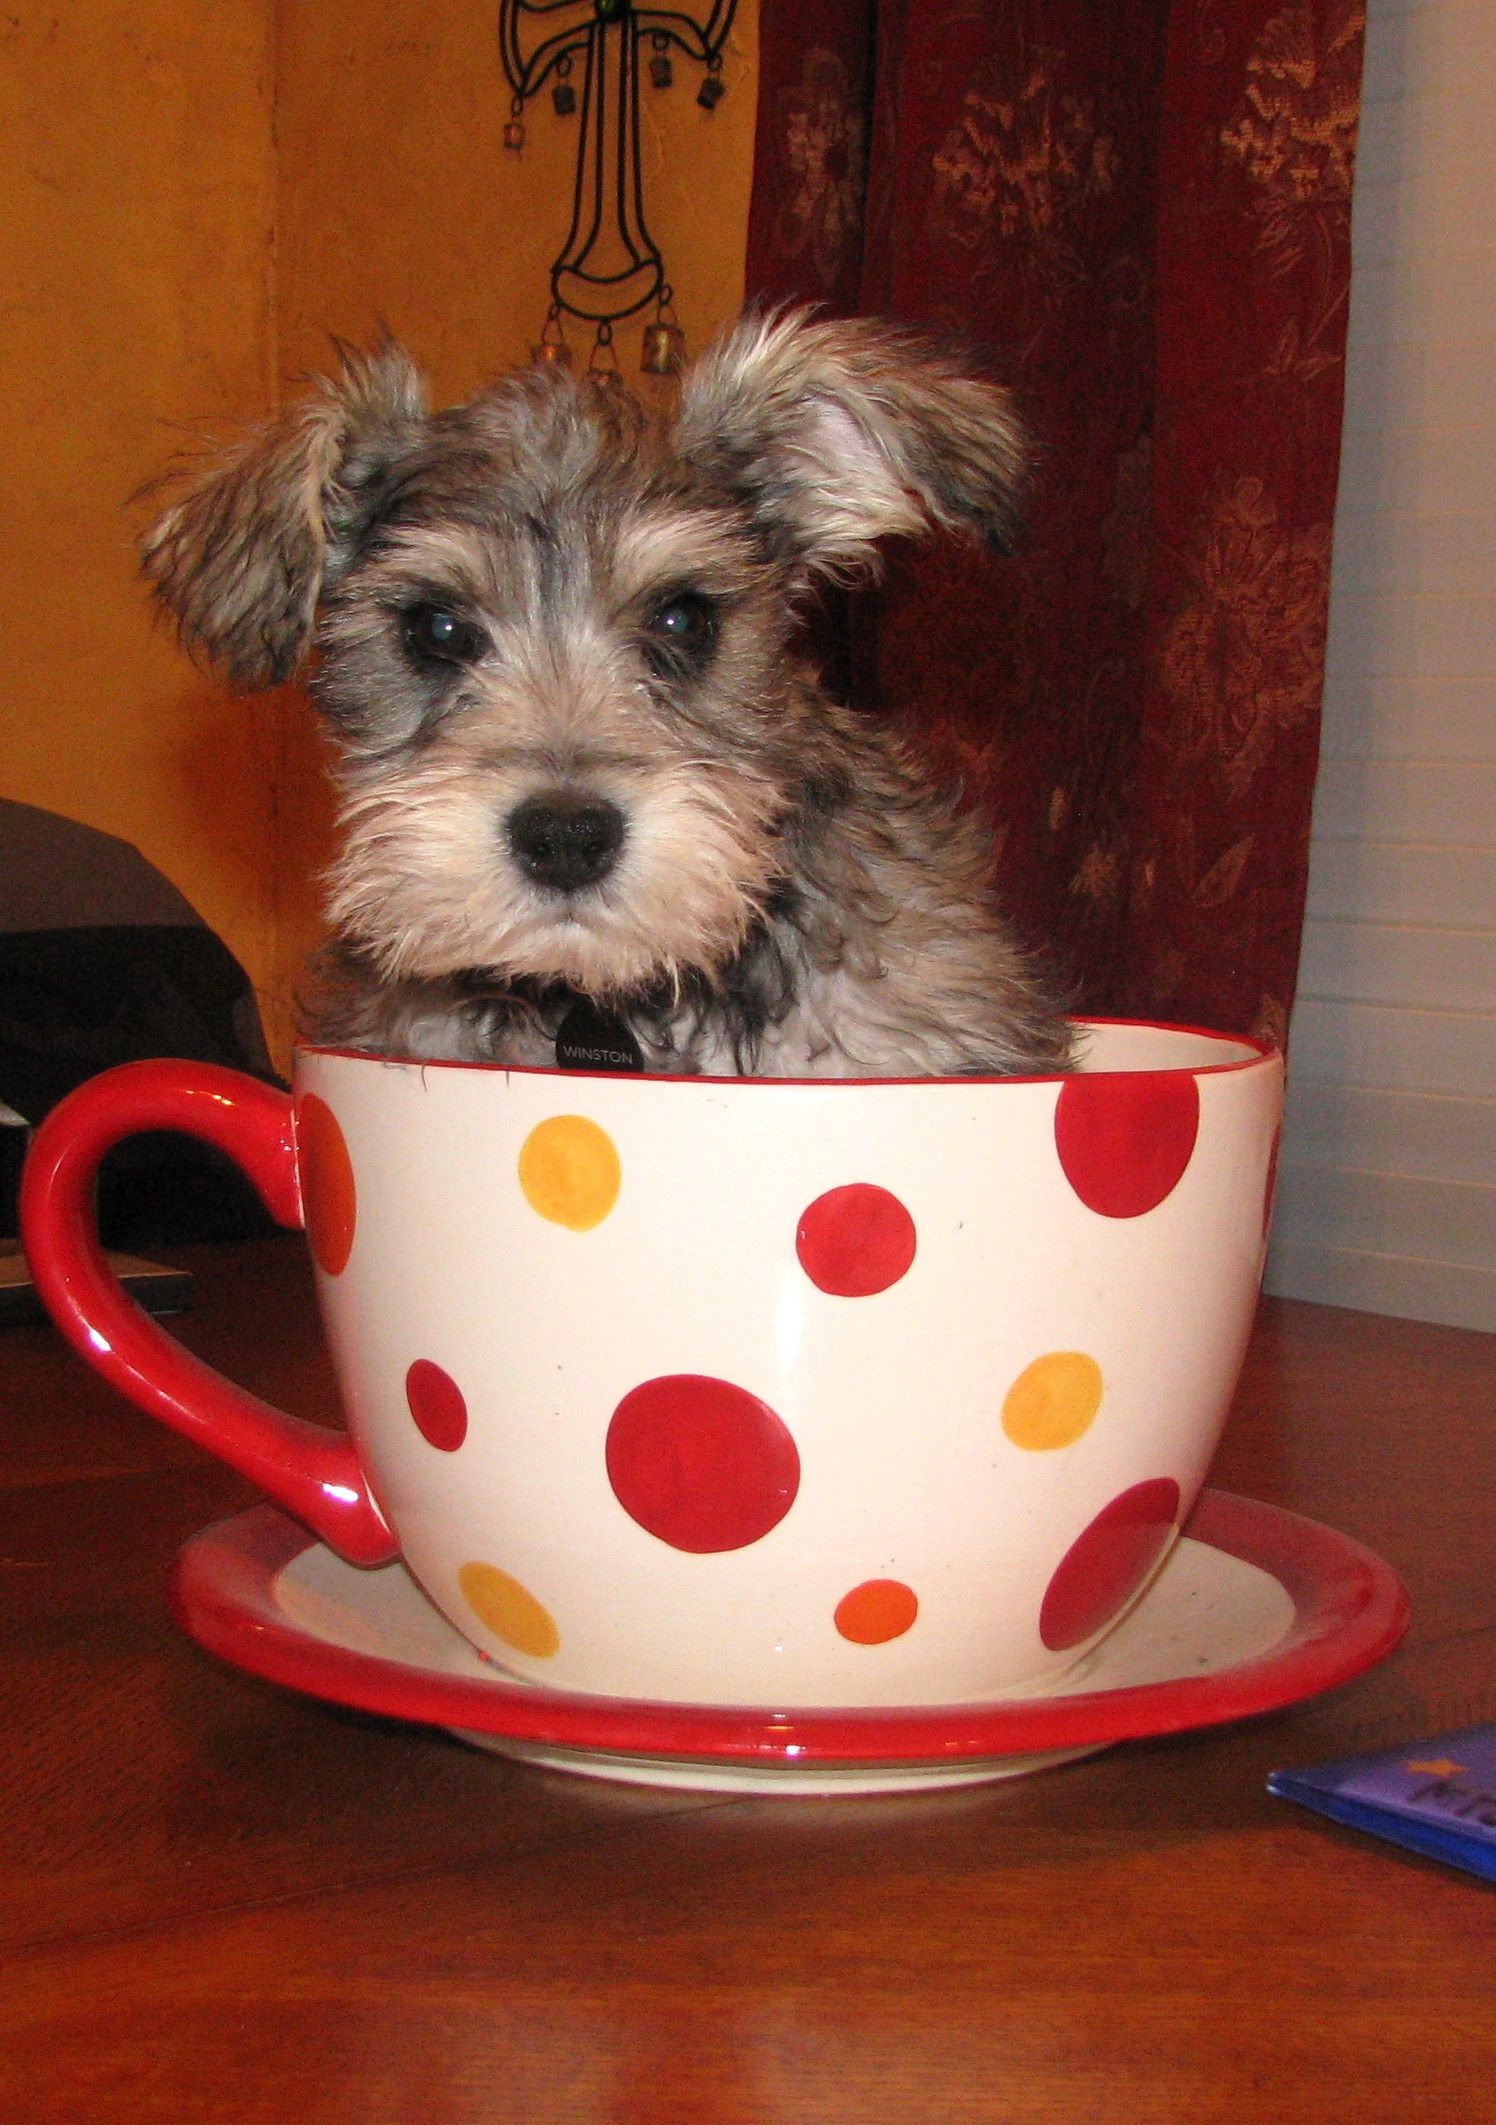 I wish I would have put Dotty in a cup when she was itty bitty